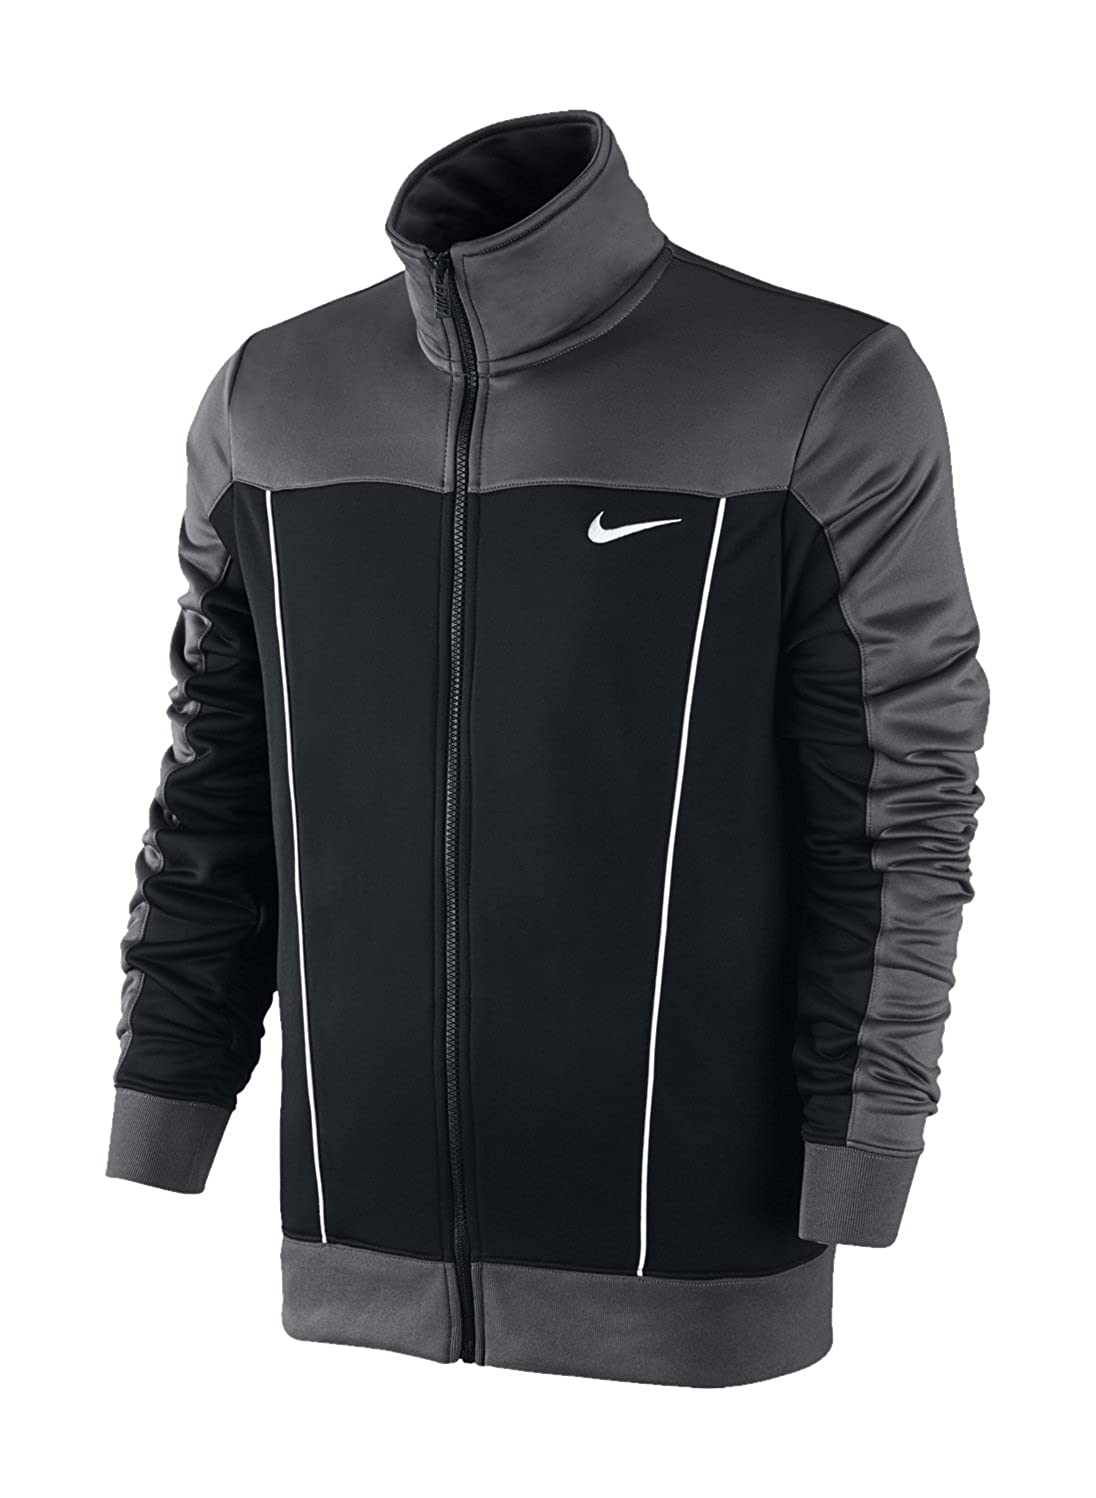 Nike Pacific Poly KNT TRK Oh - Chándal para hombre: Amazon.es ...